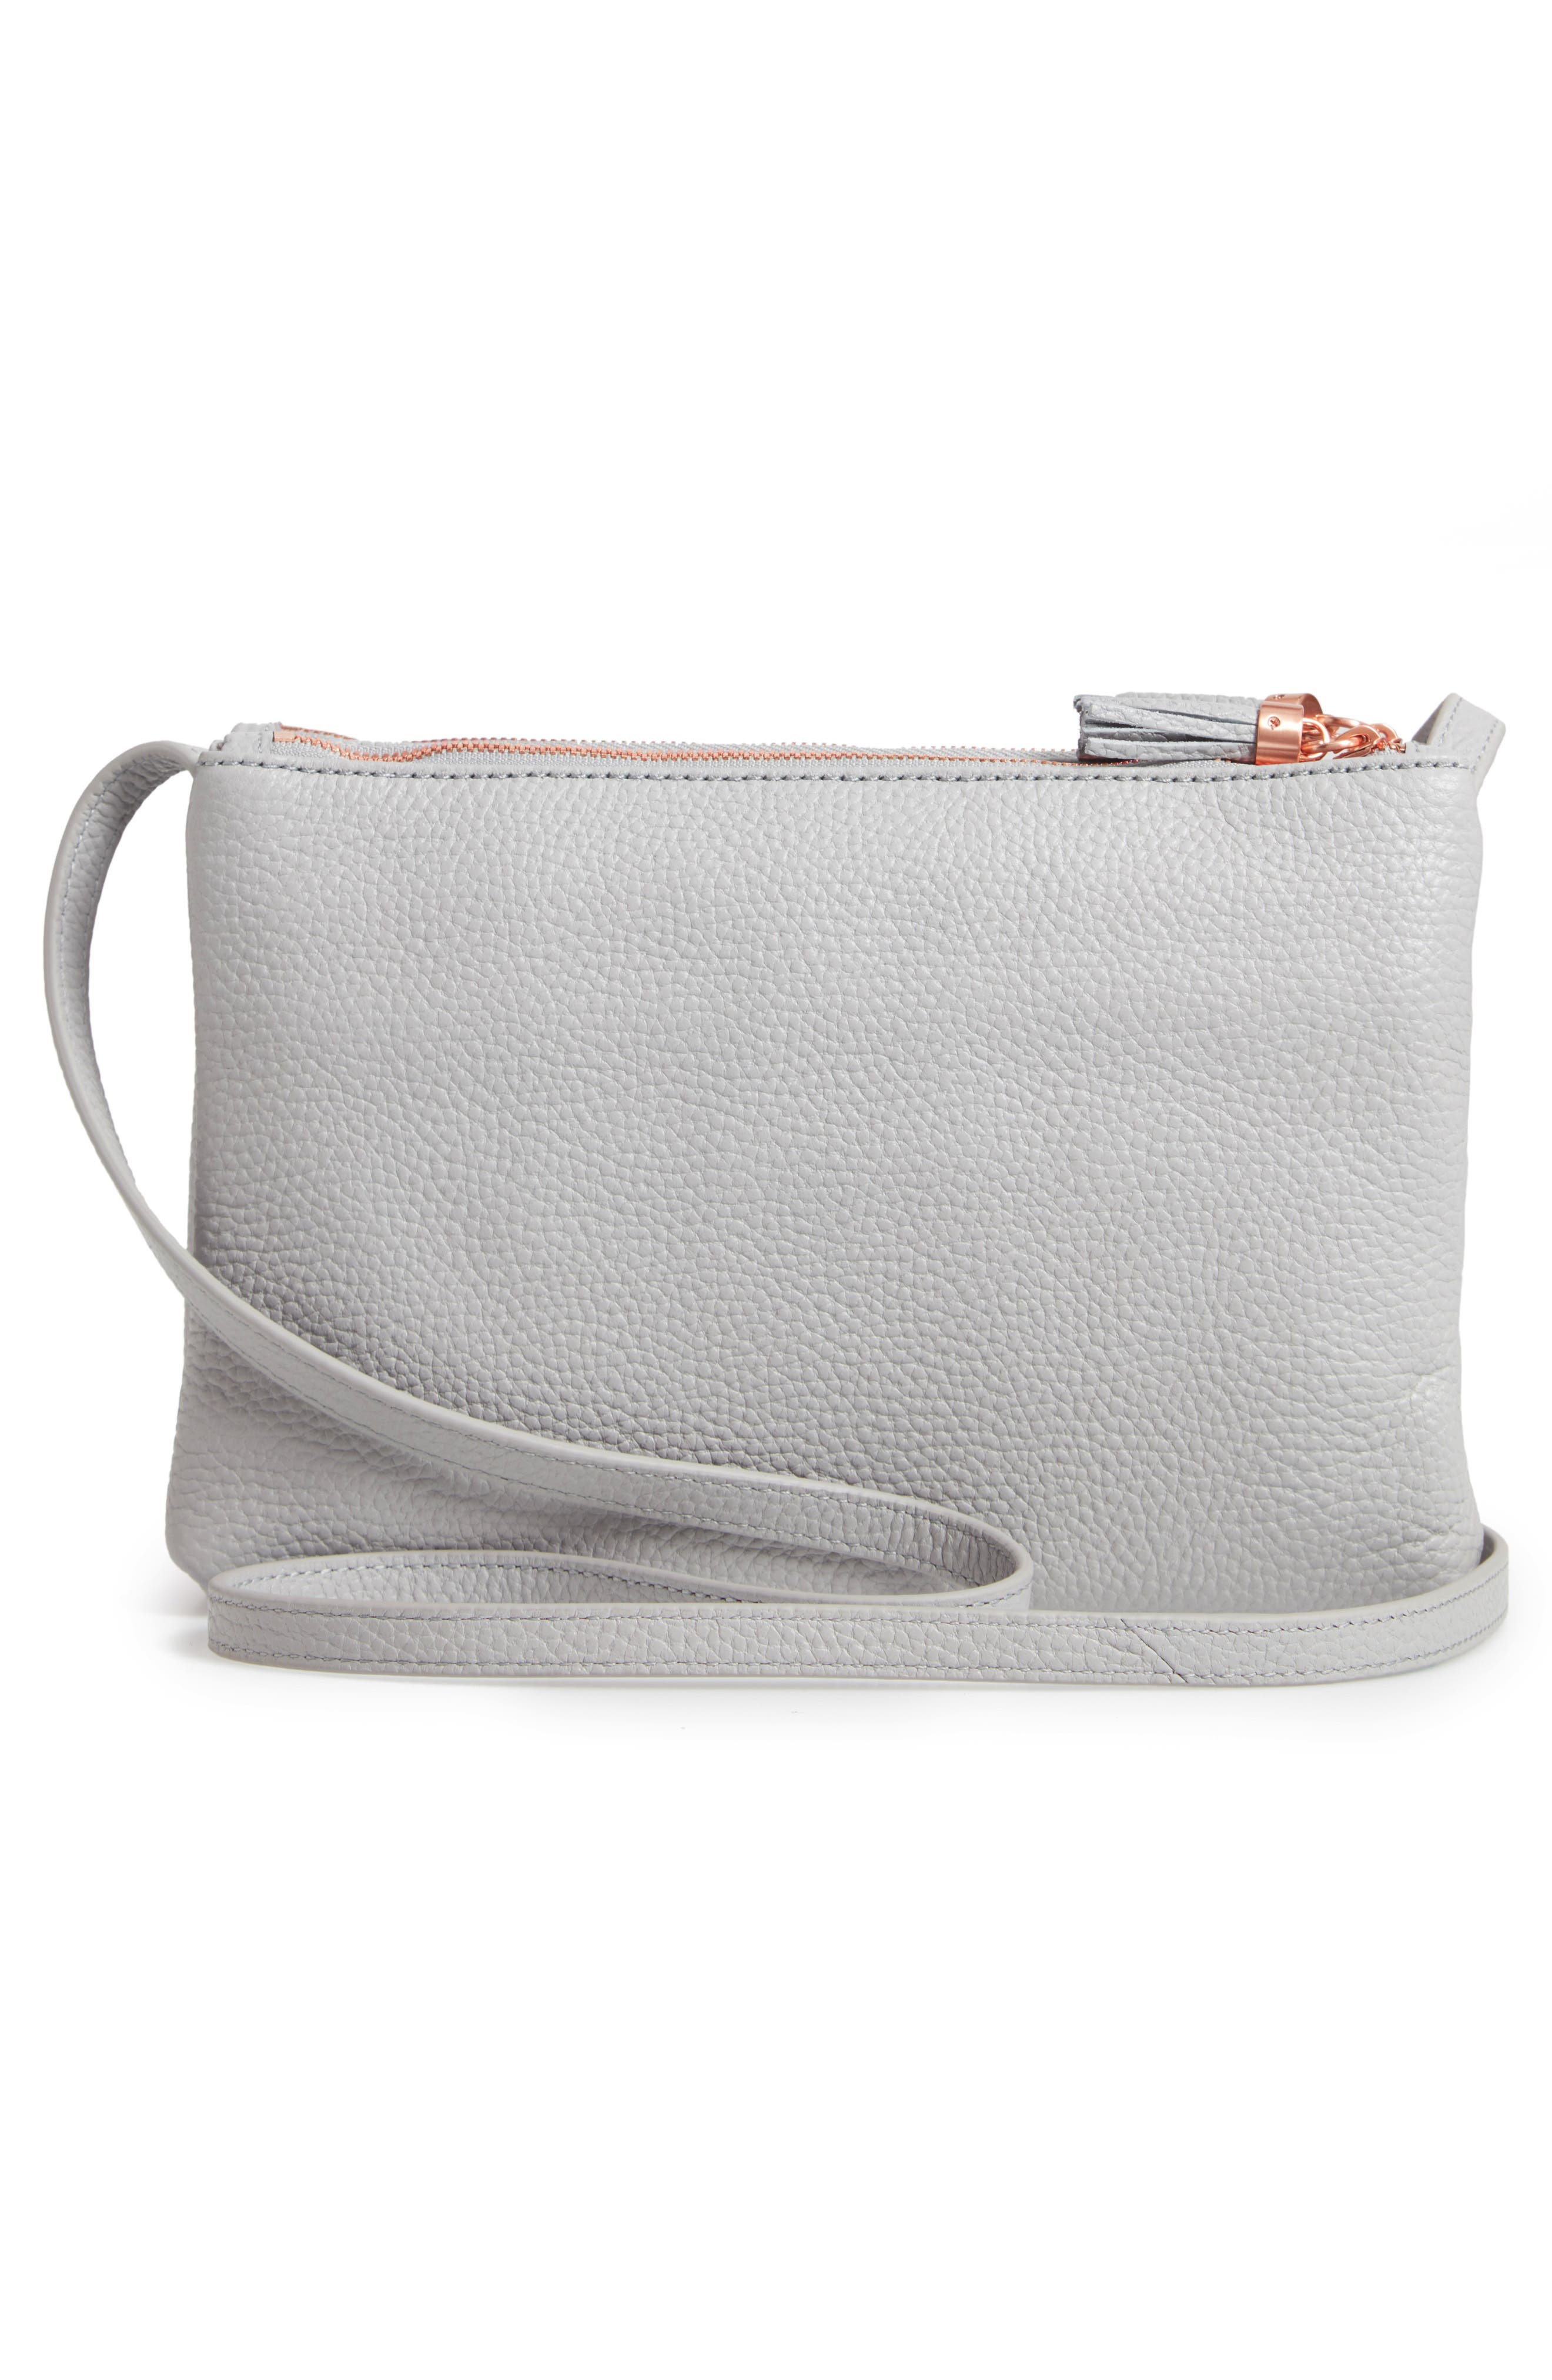 Maceyy Double Zip Leather Crossbody Bag,                             Alternate thumbnail 3, color,                             GREY